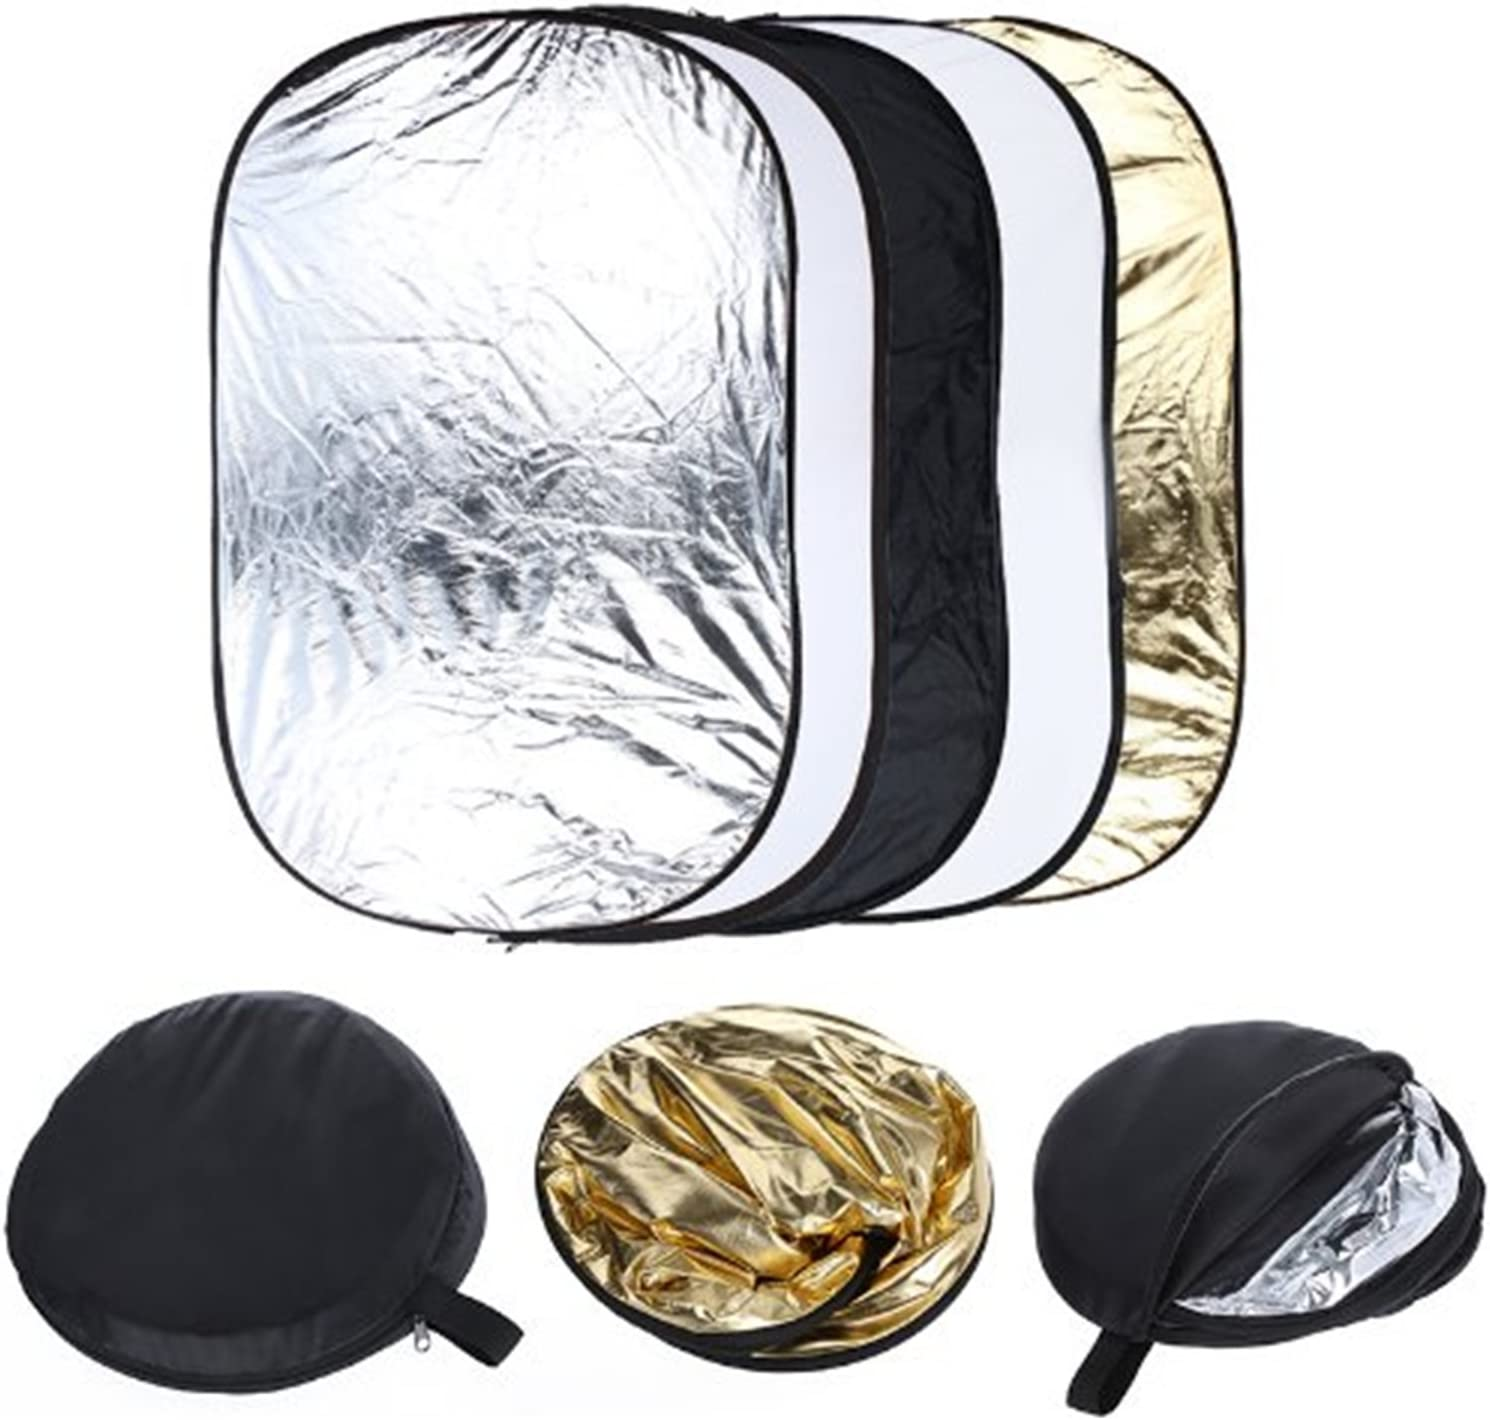 61x91cm 5 in 1 Portable Pography Collapsible Light Reflector CHUN-Accessory